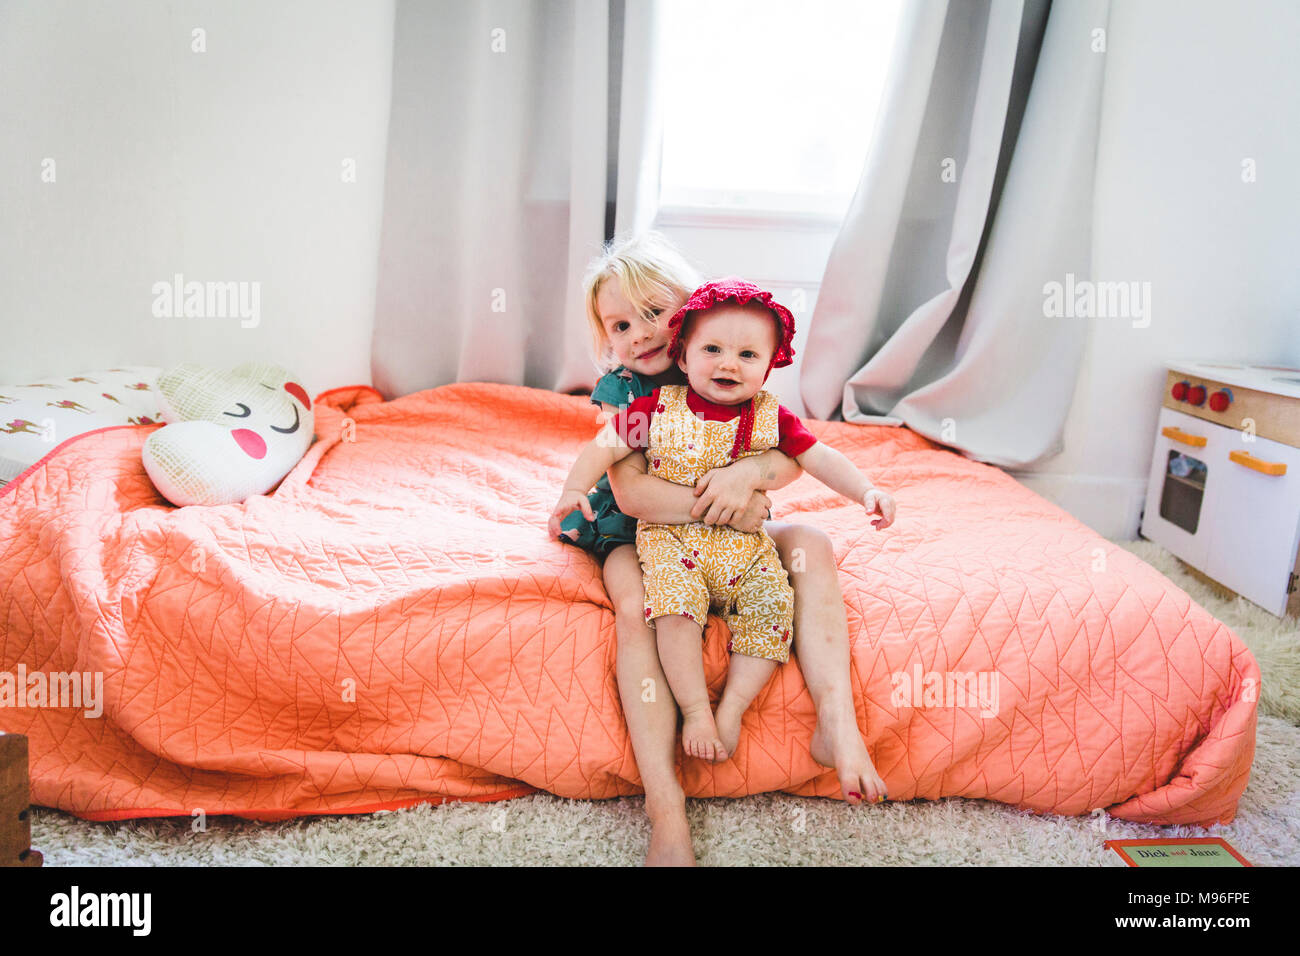 Girl holding baby on bed - Stock Image